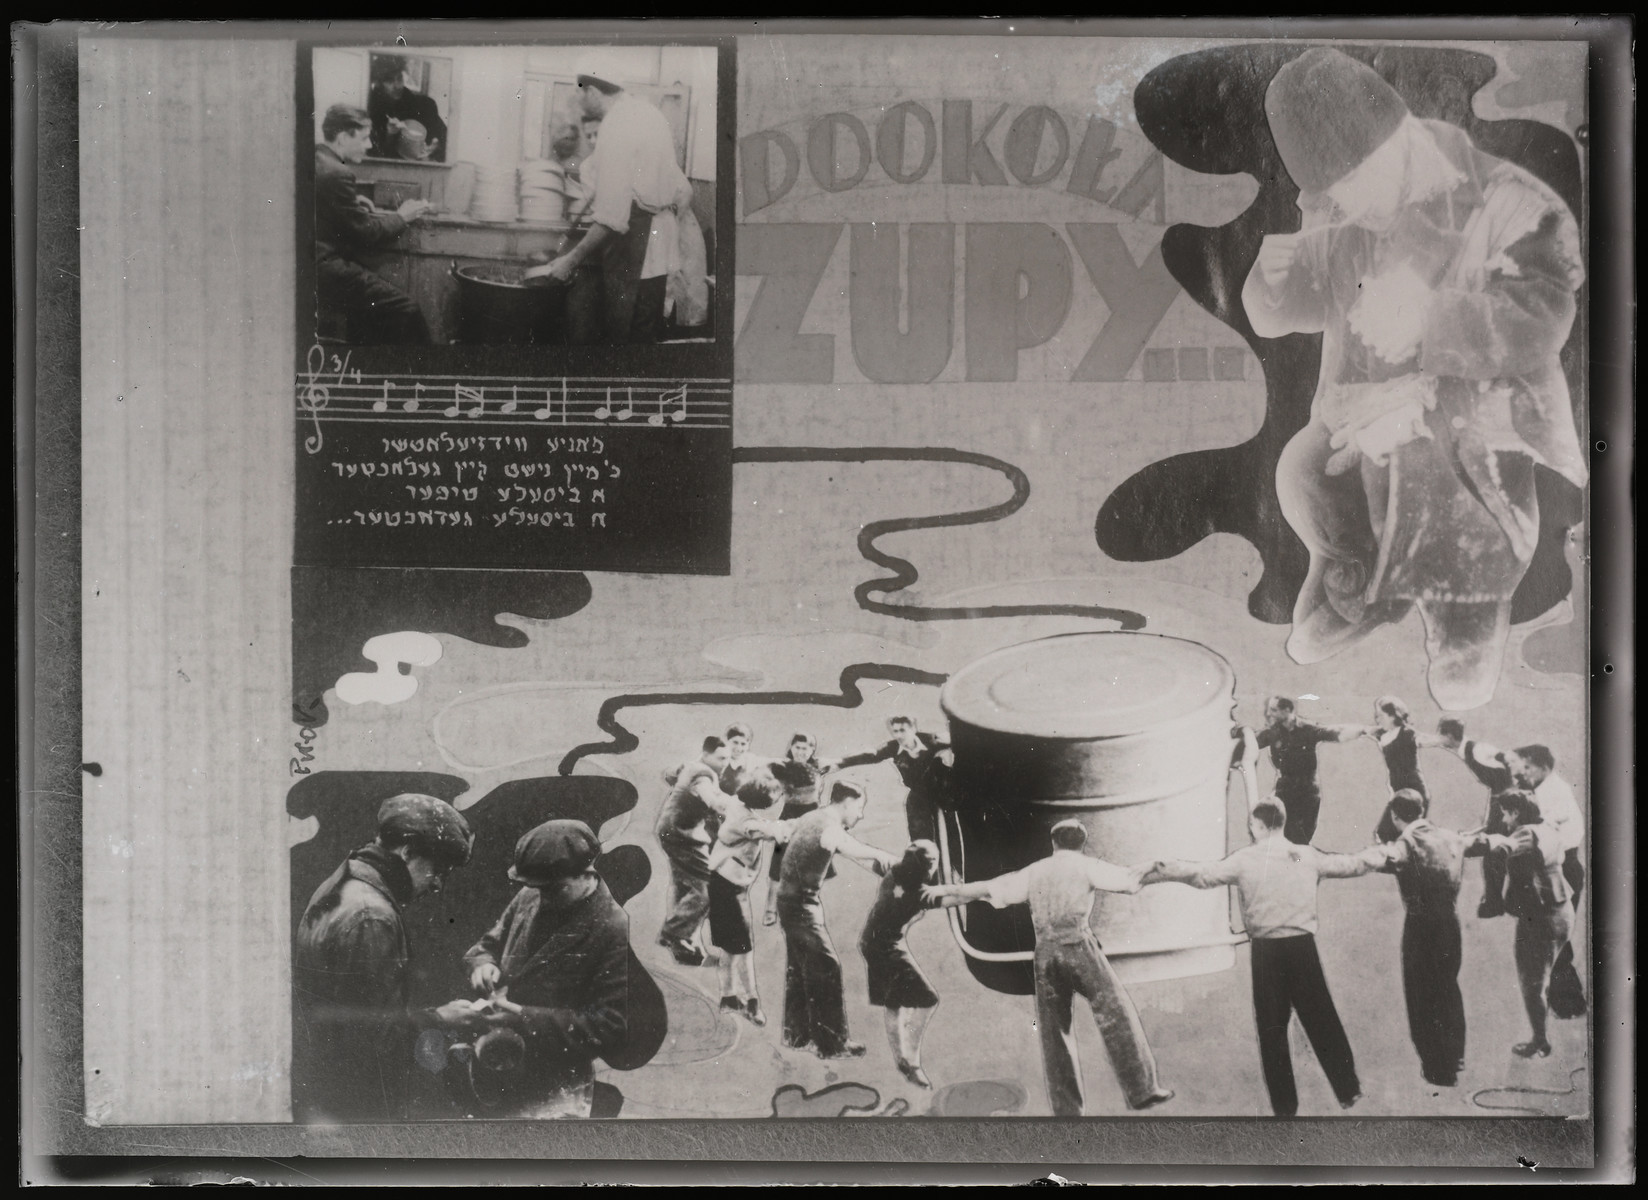 "Collage created by Arie Princ (now Ben Menachem) using documents from the Lodz ghetto and photographs by Mendel Grosman.   The sign reads: ""Dookola zupy..."" (""Around the soup"").  The collage was published during the war by the underground organisation PWOK, the Aid for Prisoners of Concentration Camps."